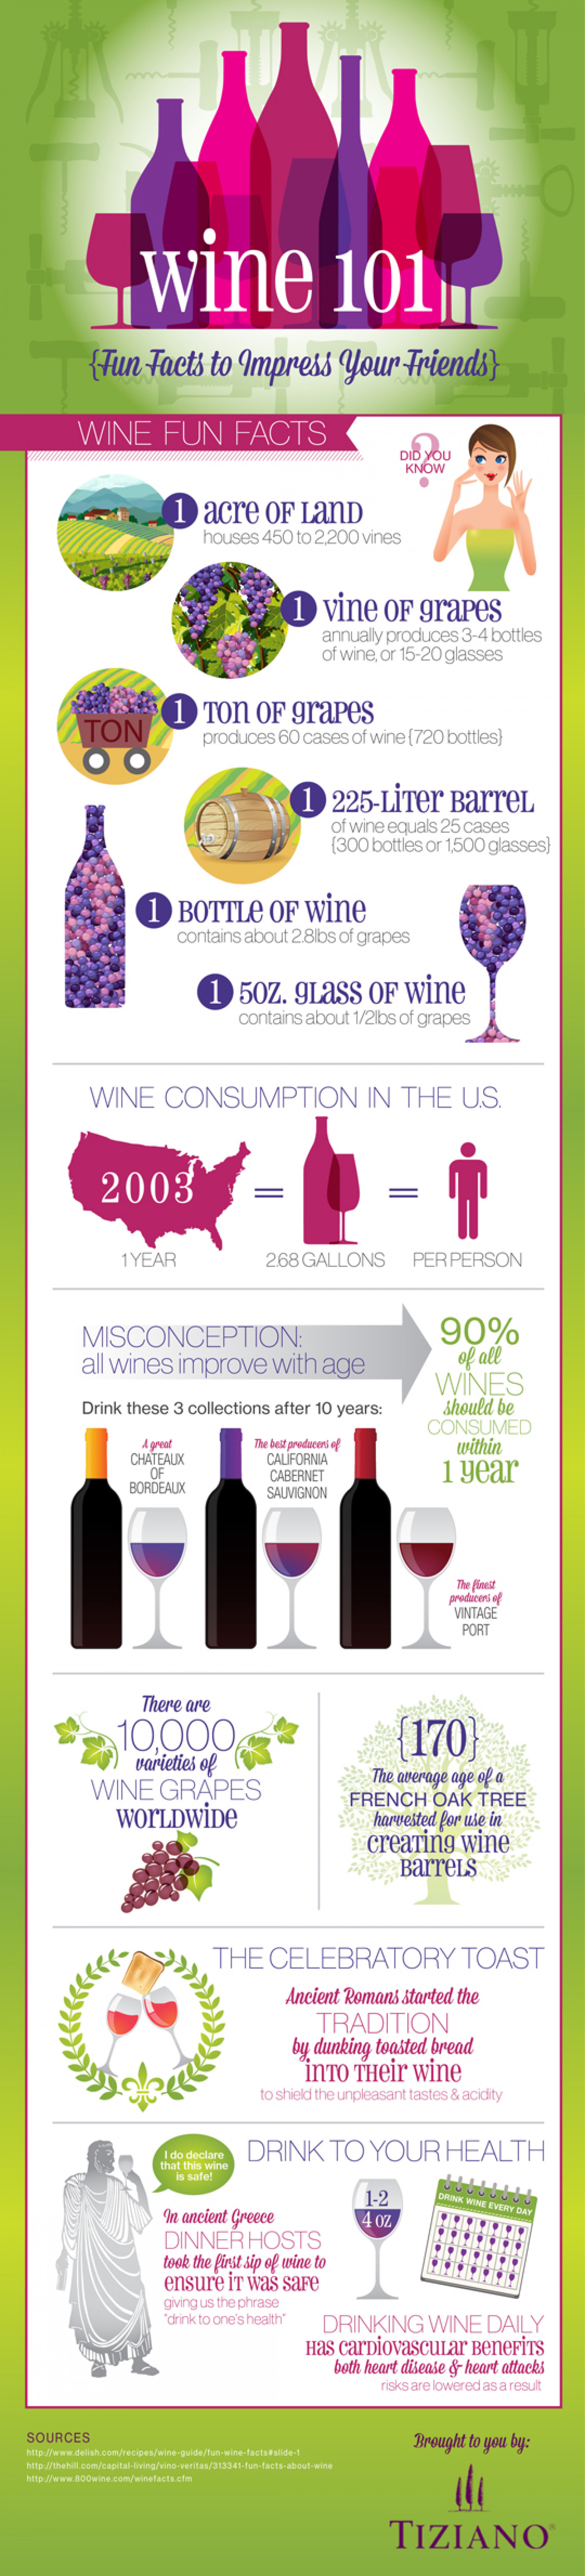 Wine 101: Fun Facts to Impress Your Friends Infographic